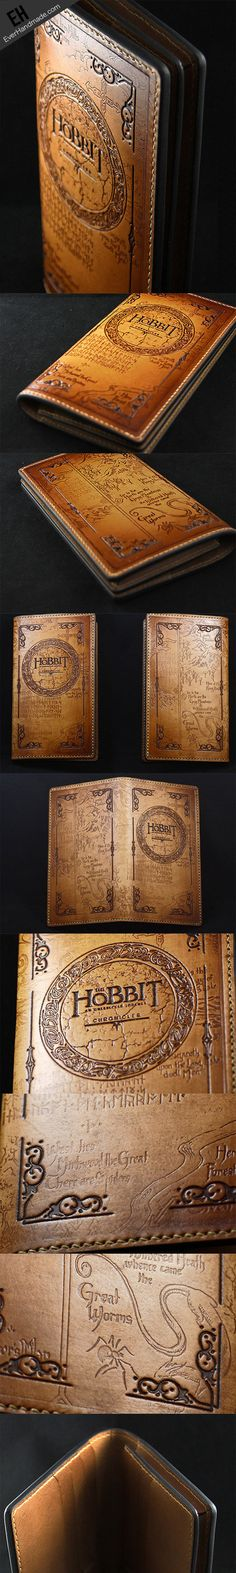 #Hobbits #hobbit Handmade carved hobbits hobbit Men leather long wallet, - I don't care if it's originally meant for men; I'd still want this.